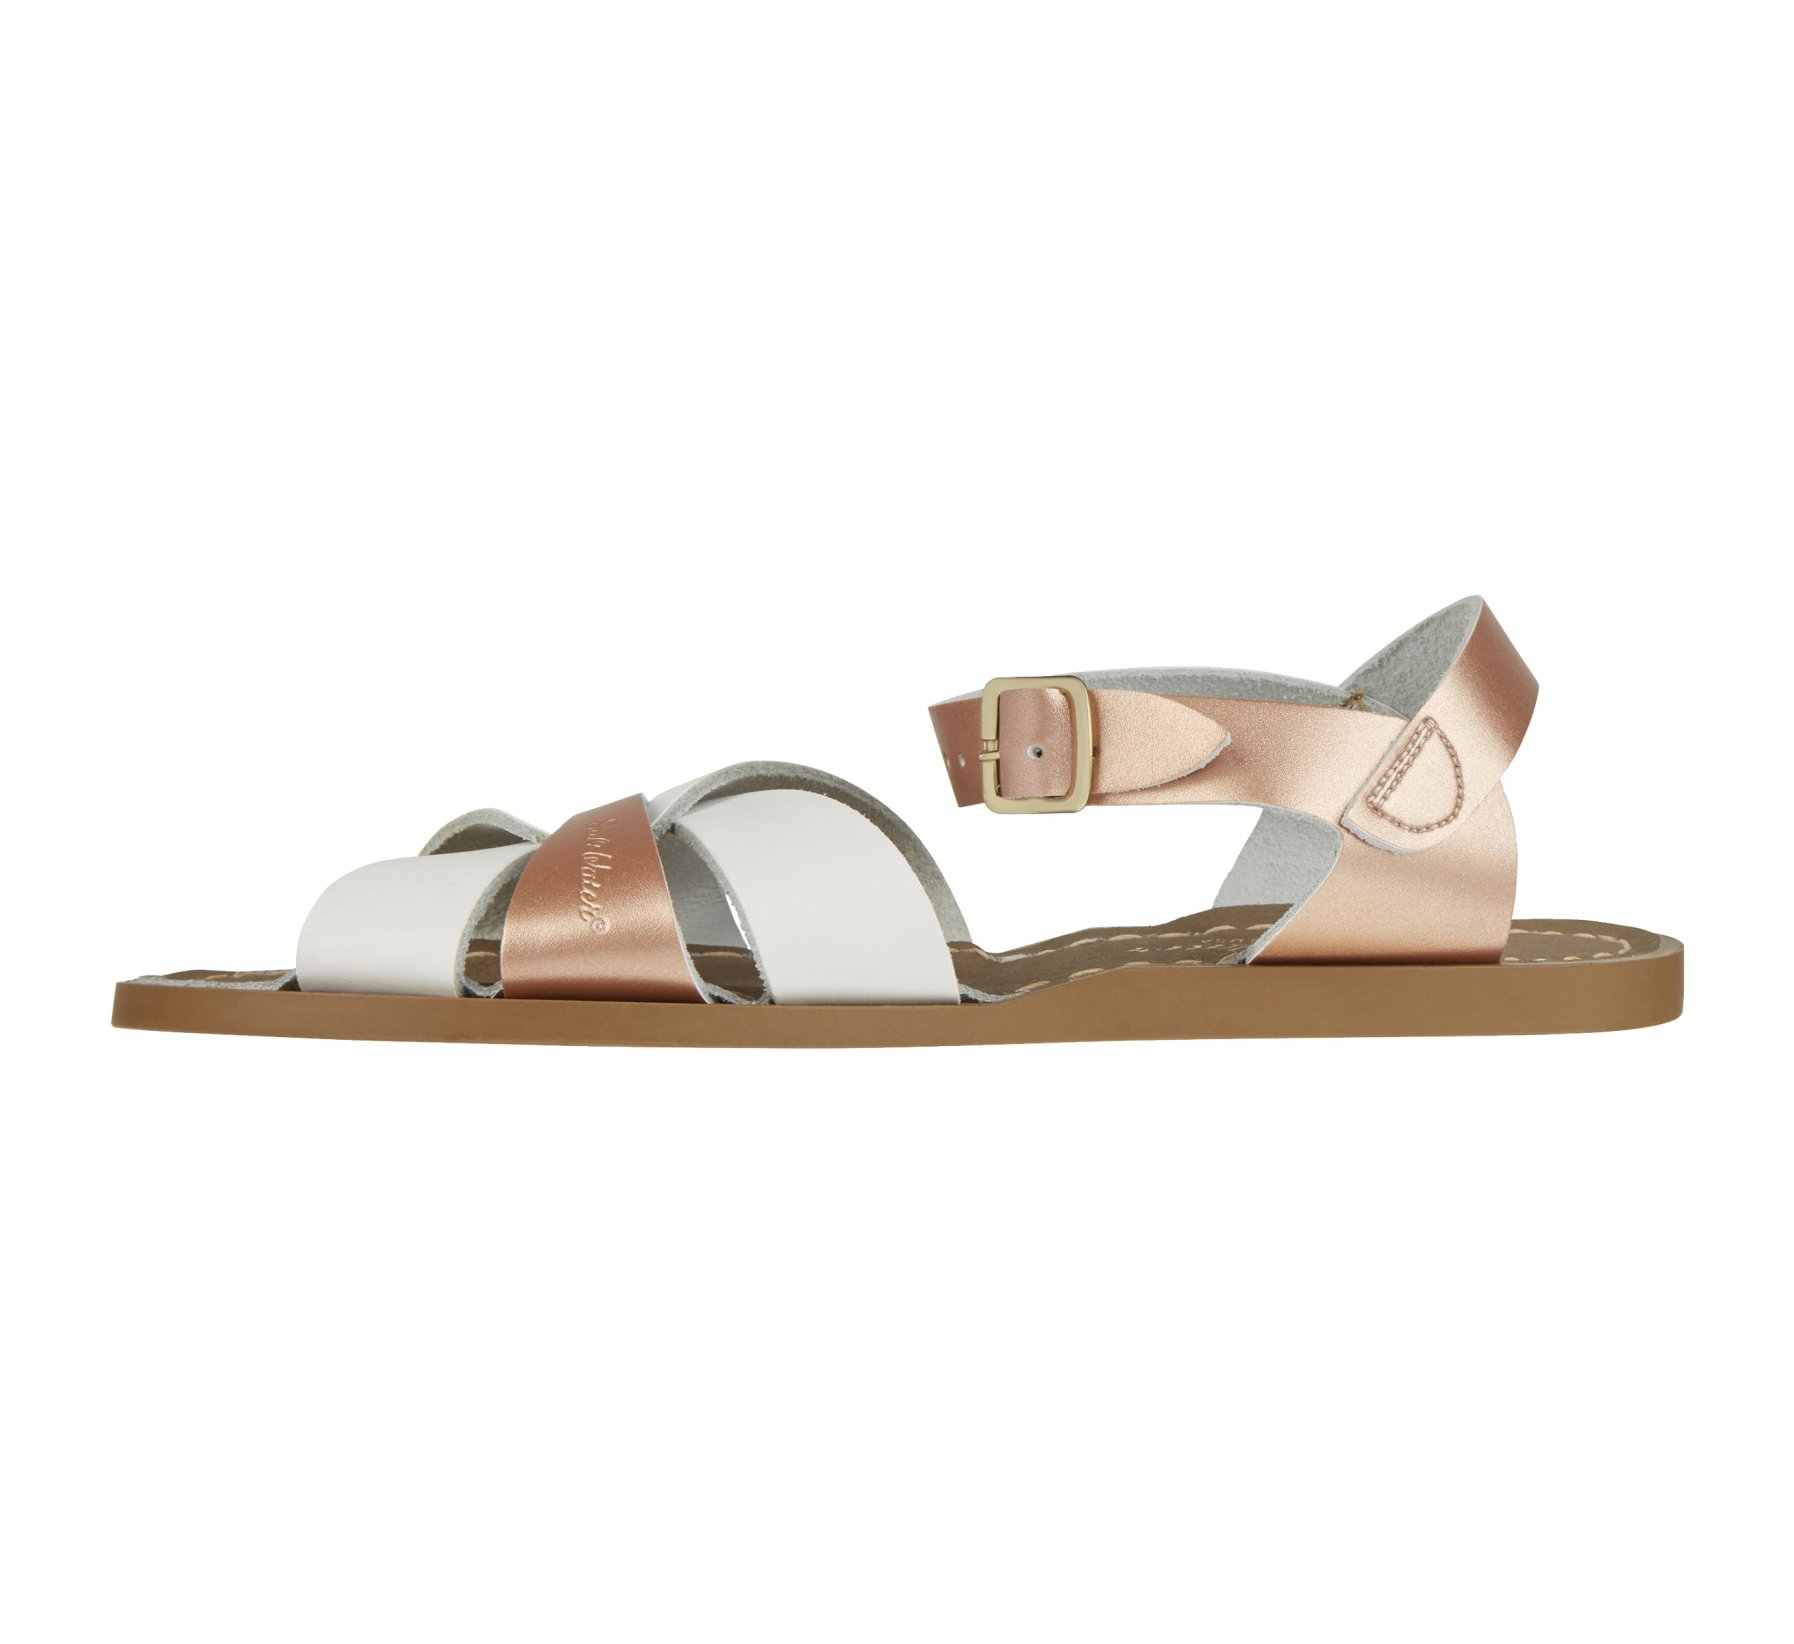 Original Seashell - Salt Water Sandals